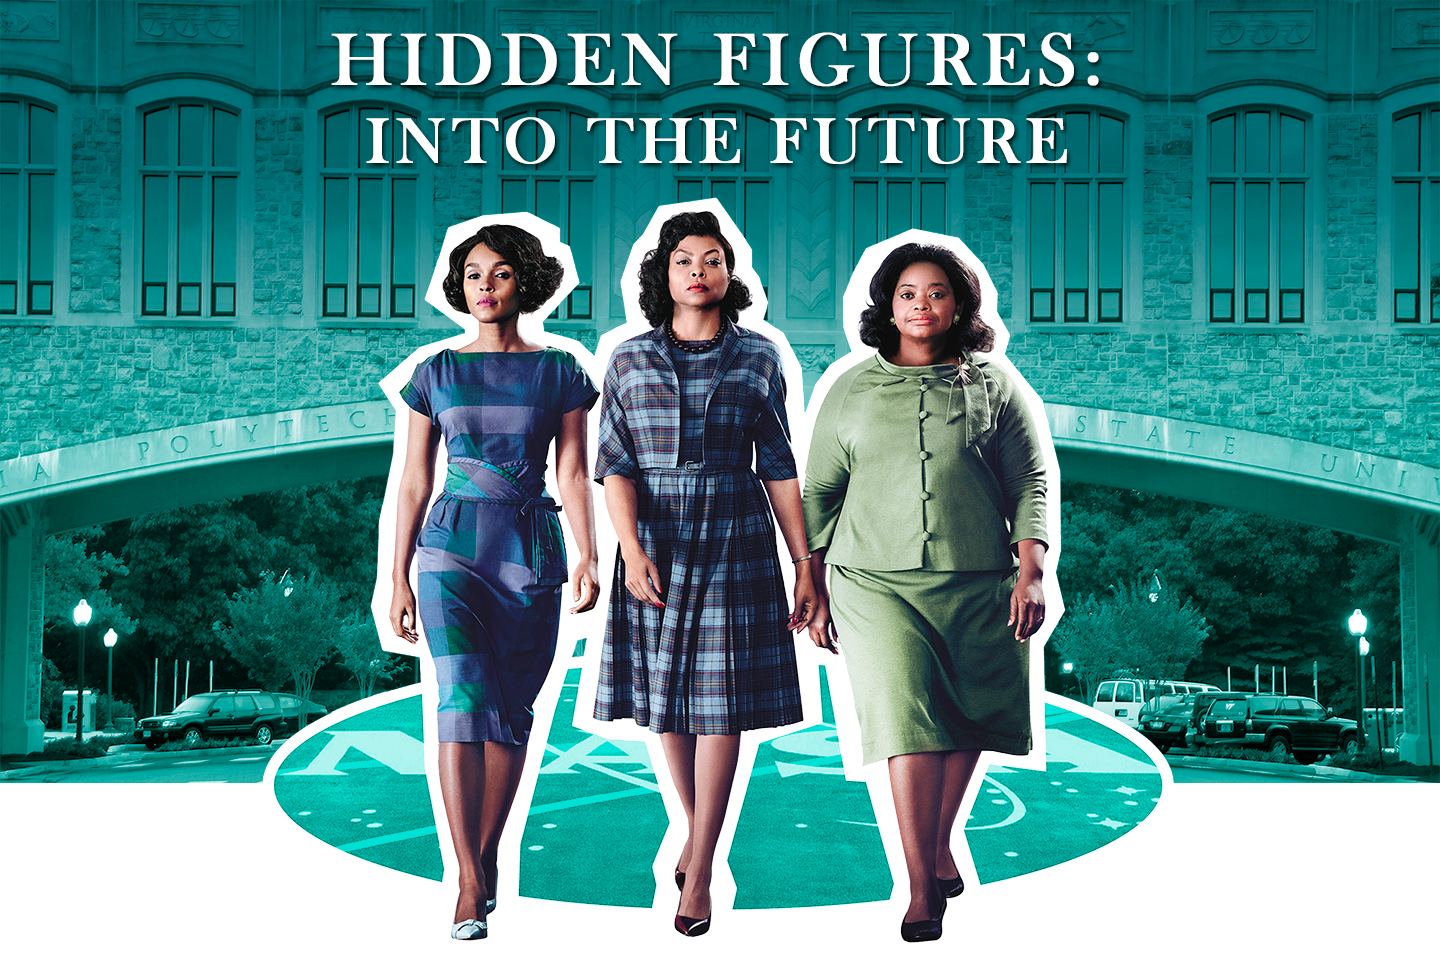 A screening of the acclaimed movie Hidden Figures + evening tours of science & technology facilities at Virginia Tech!